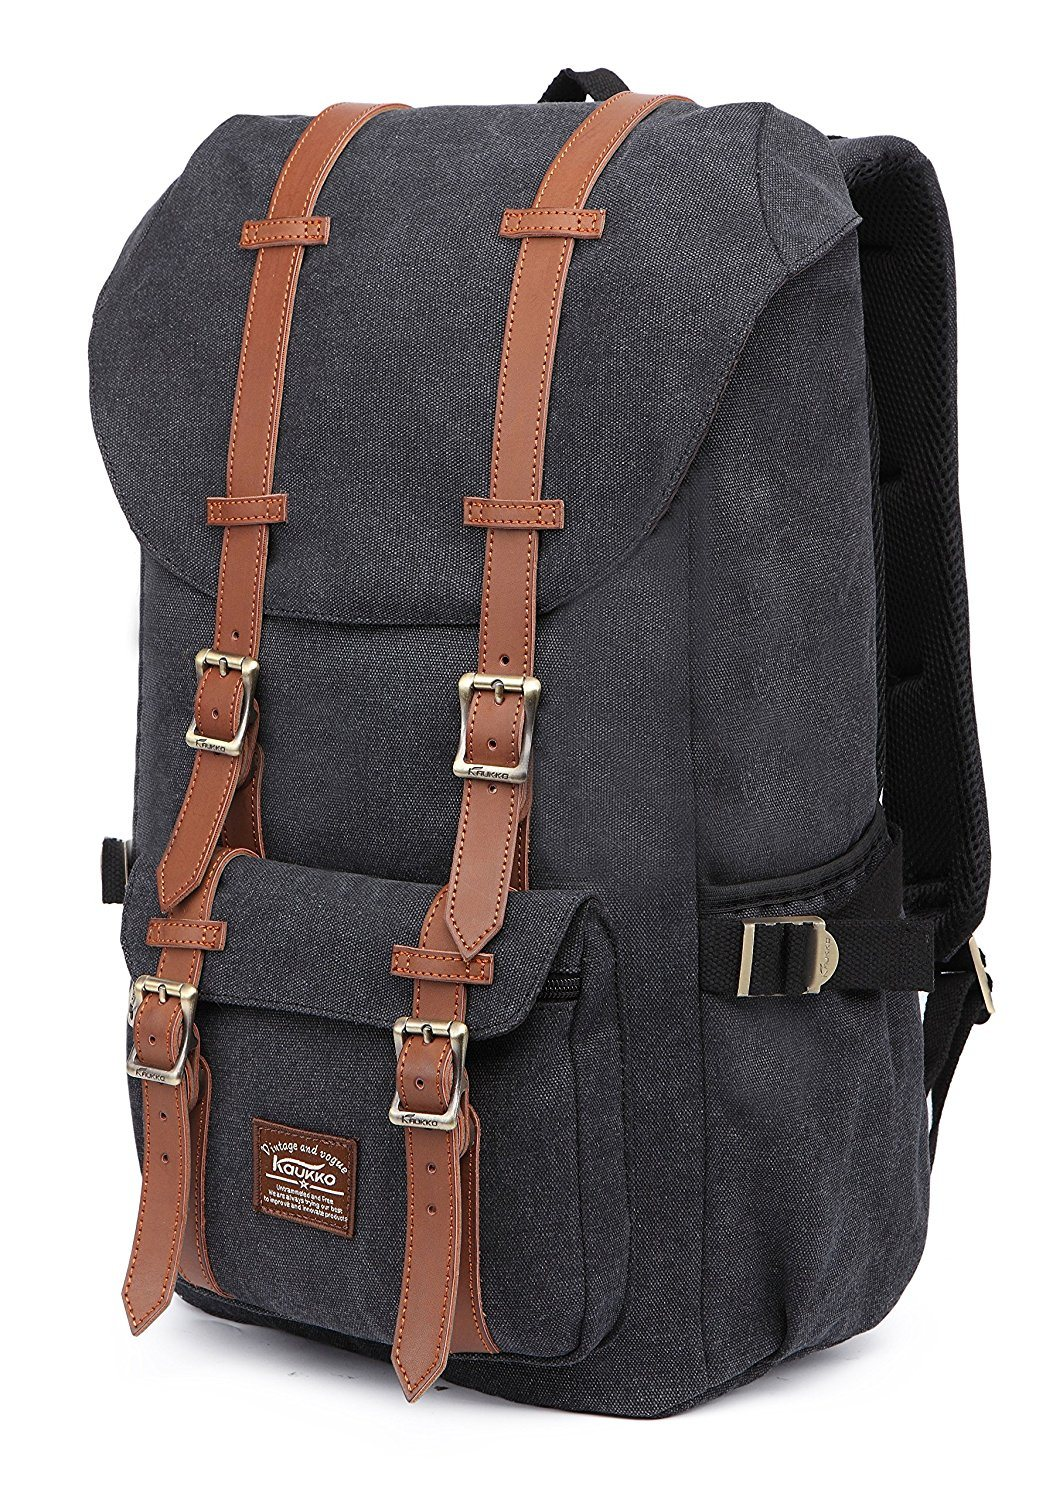 Laptop Outdoor Travel Hiking Camping Casual Large College School Herschel Rucksack/Backpack